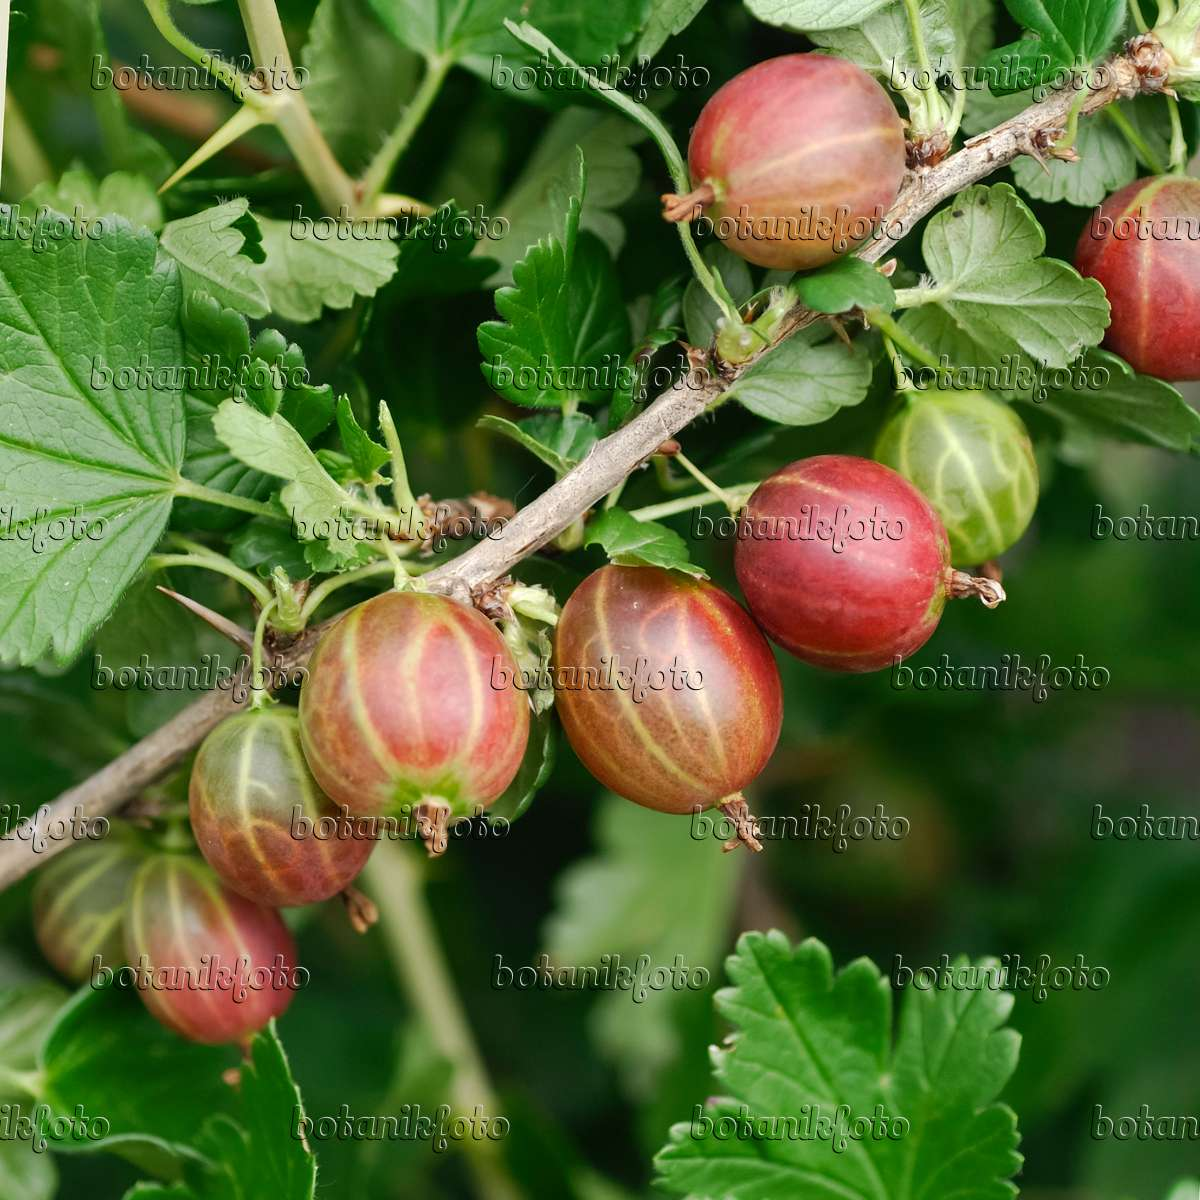 image gooseberry ribes uva crispa 39 redeva 39 454086 images and videos of plants and gardens. Black Bedroom Furniture Sets. Home Design Ideas